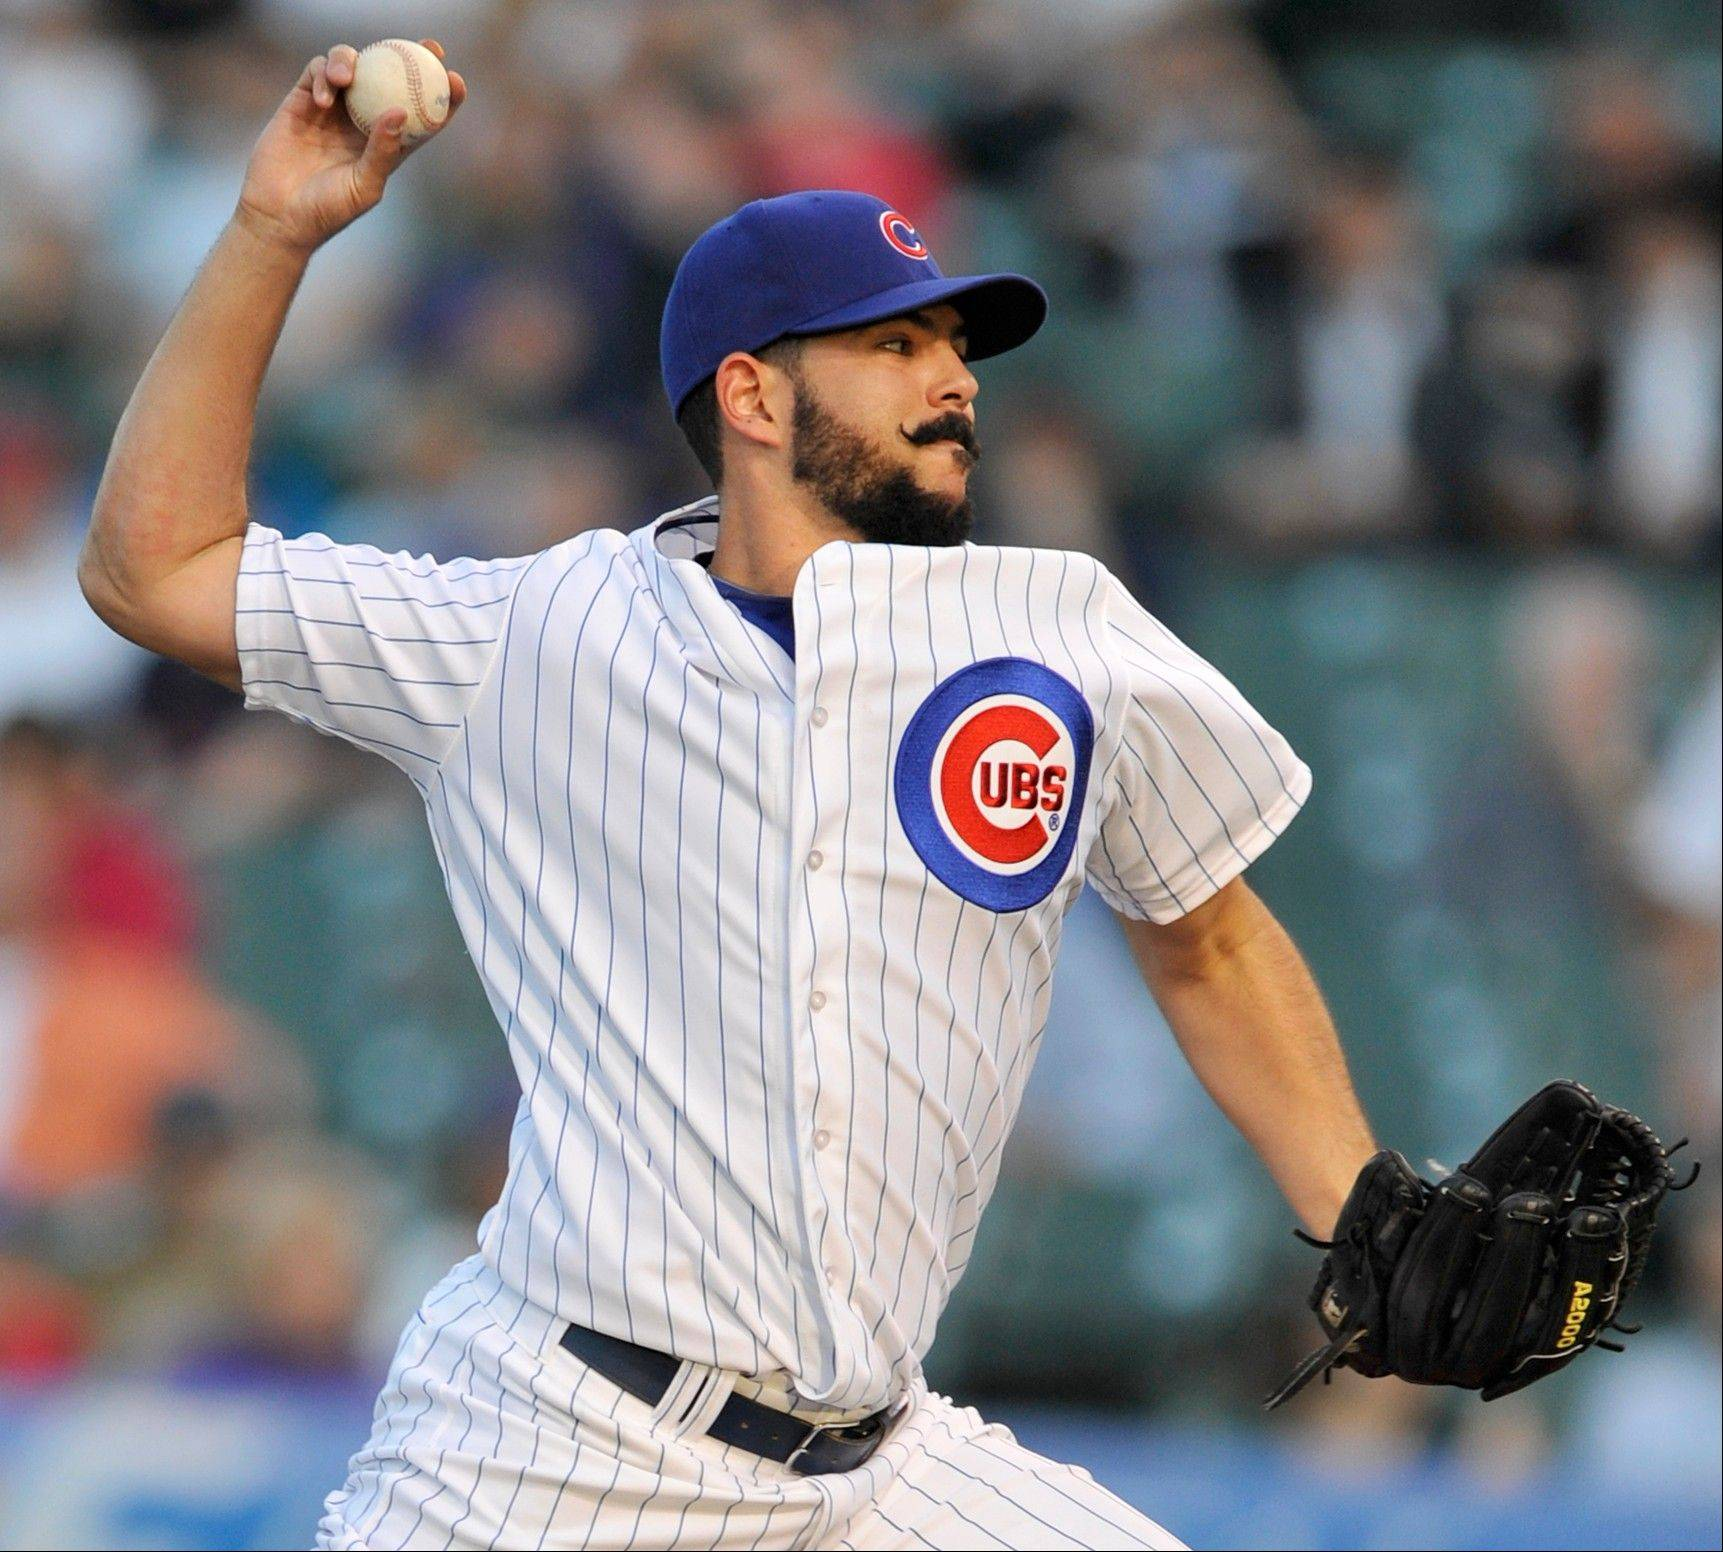 Chicago Cubs starter Carlos Villanueva delivers a pitch against the Colorado Rockies during the first inning of a baseball game in Chicago, Tuesday, May 14, 2013.